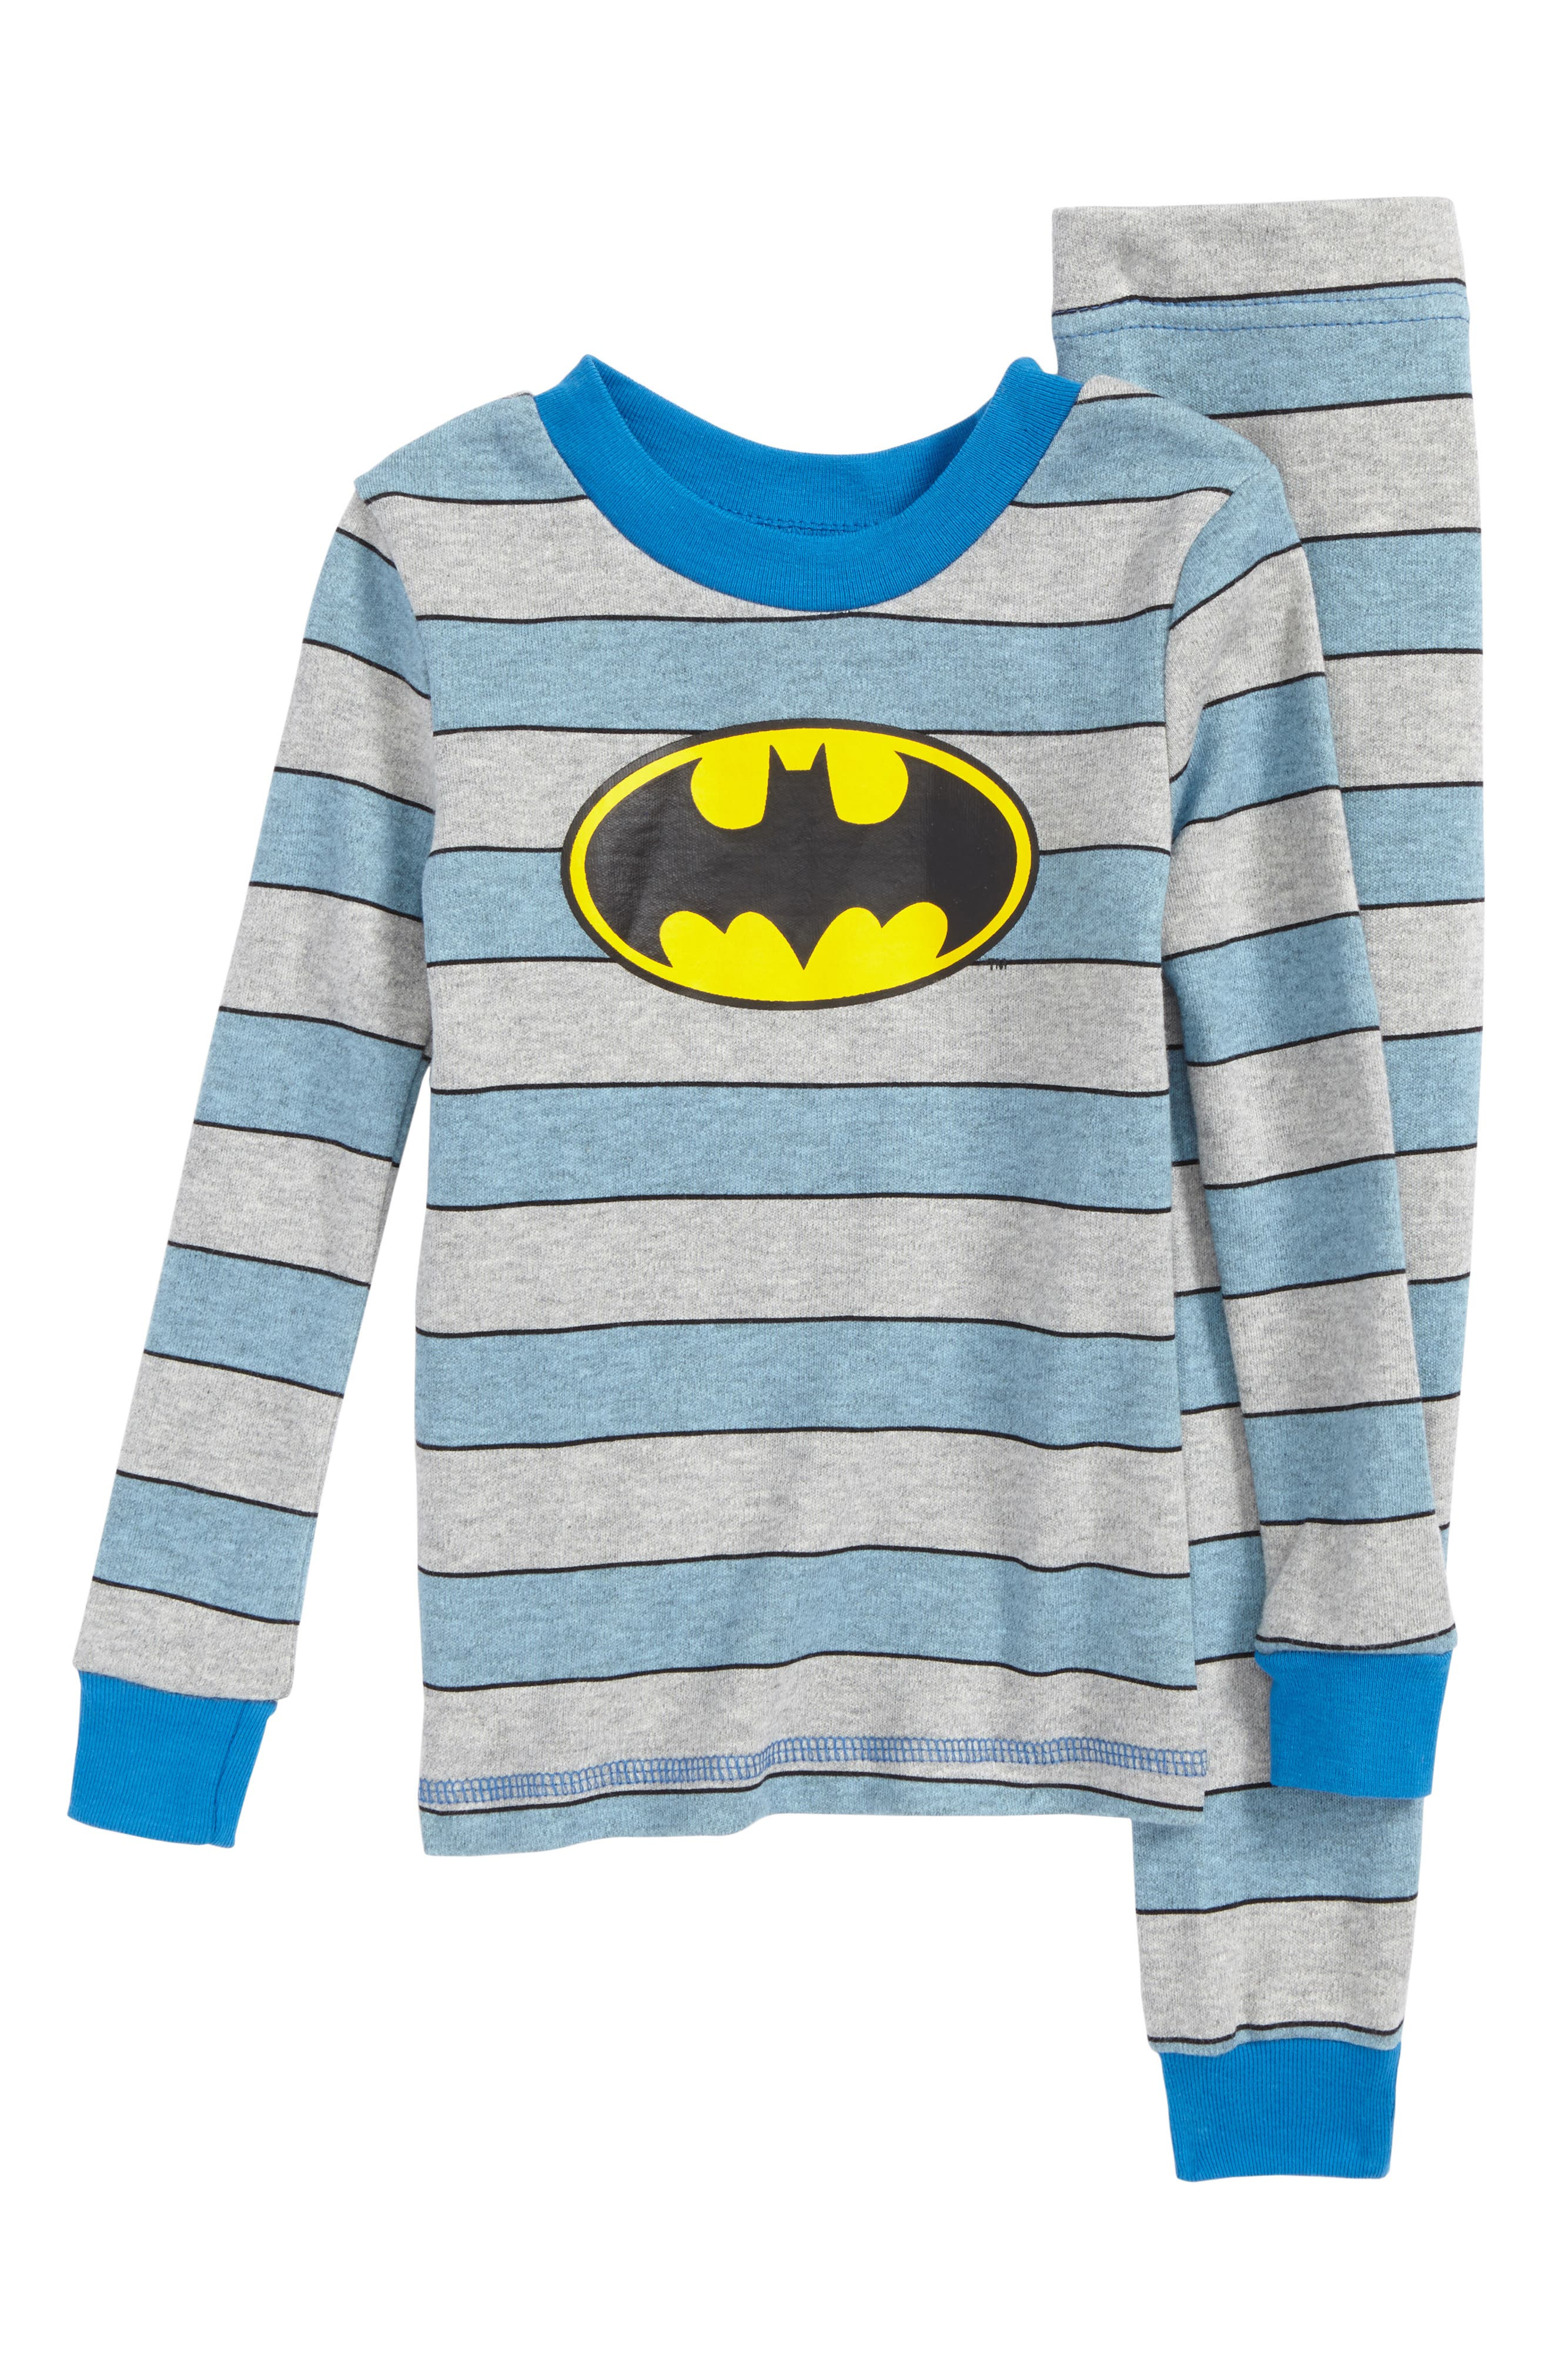 Batman Fitted Two-Piece Pajama Set,                             Main thumbnail 1, color,                             469